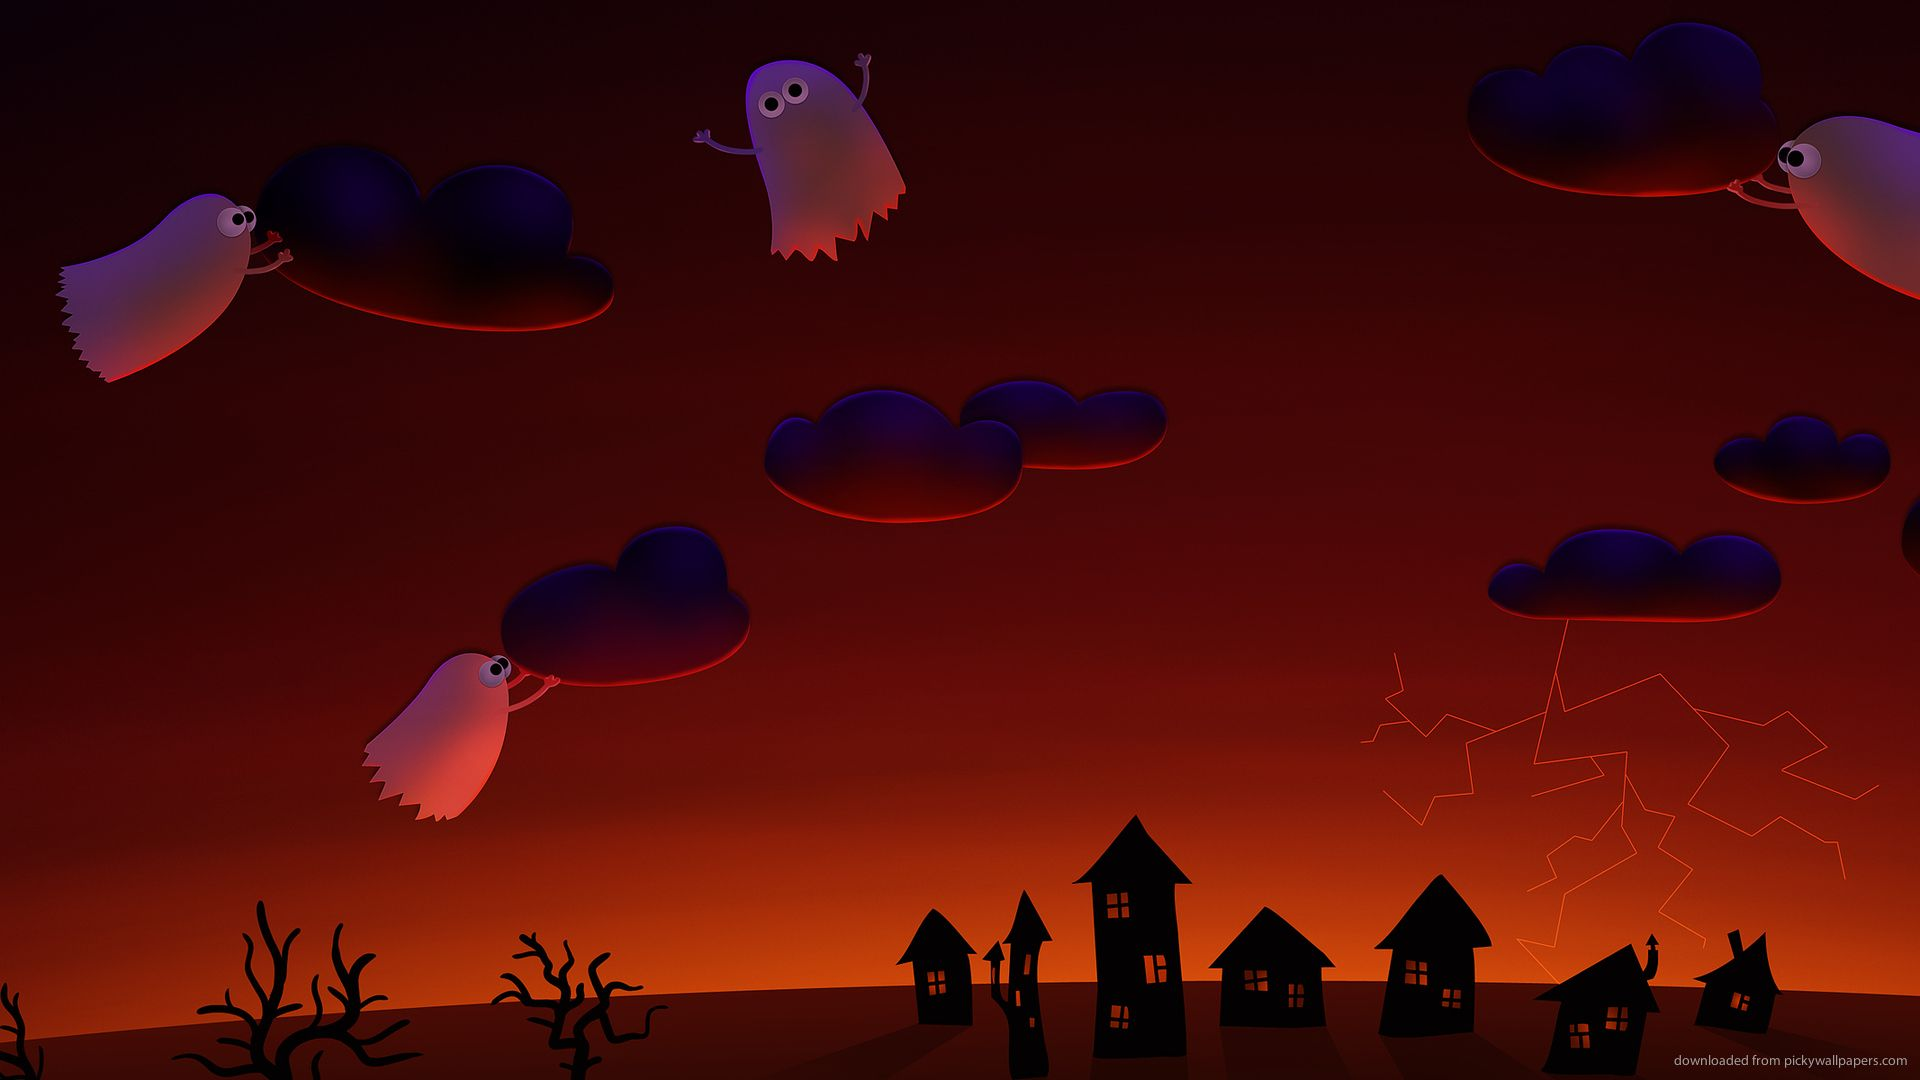 Download 50 Cute And Happy Halloween Wallpapers Hd For Free Halloween Wallpaper Halloween Backgrounds Cute Halloween